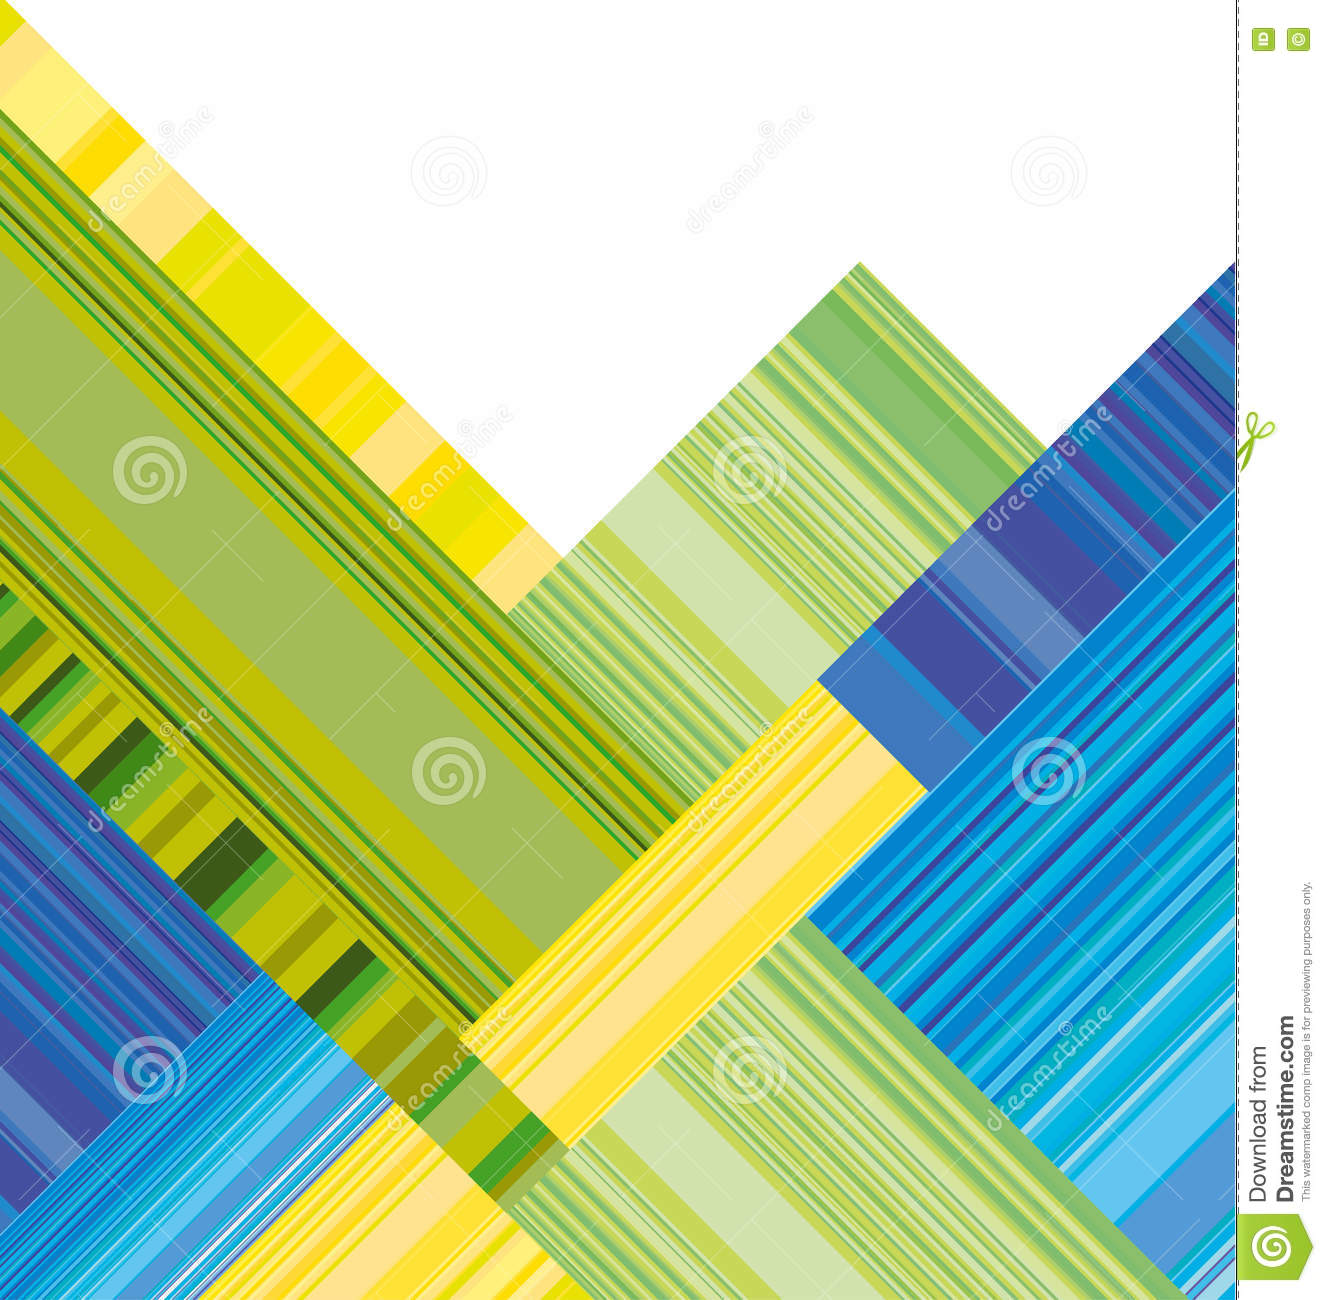 Blue and green pattern wallpaper - photo#48